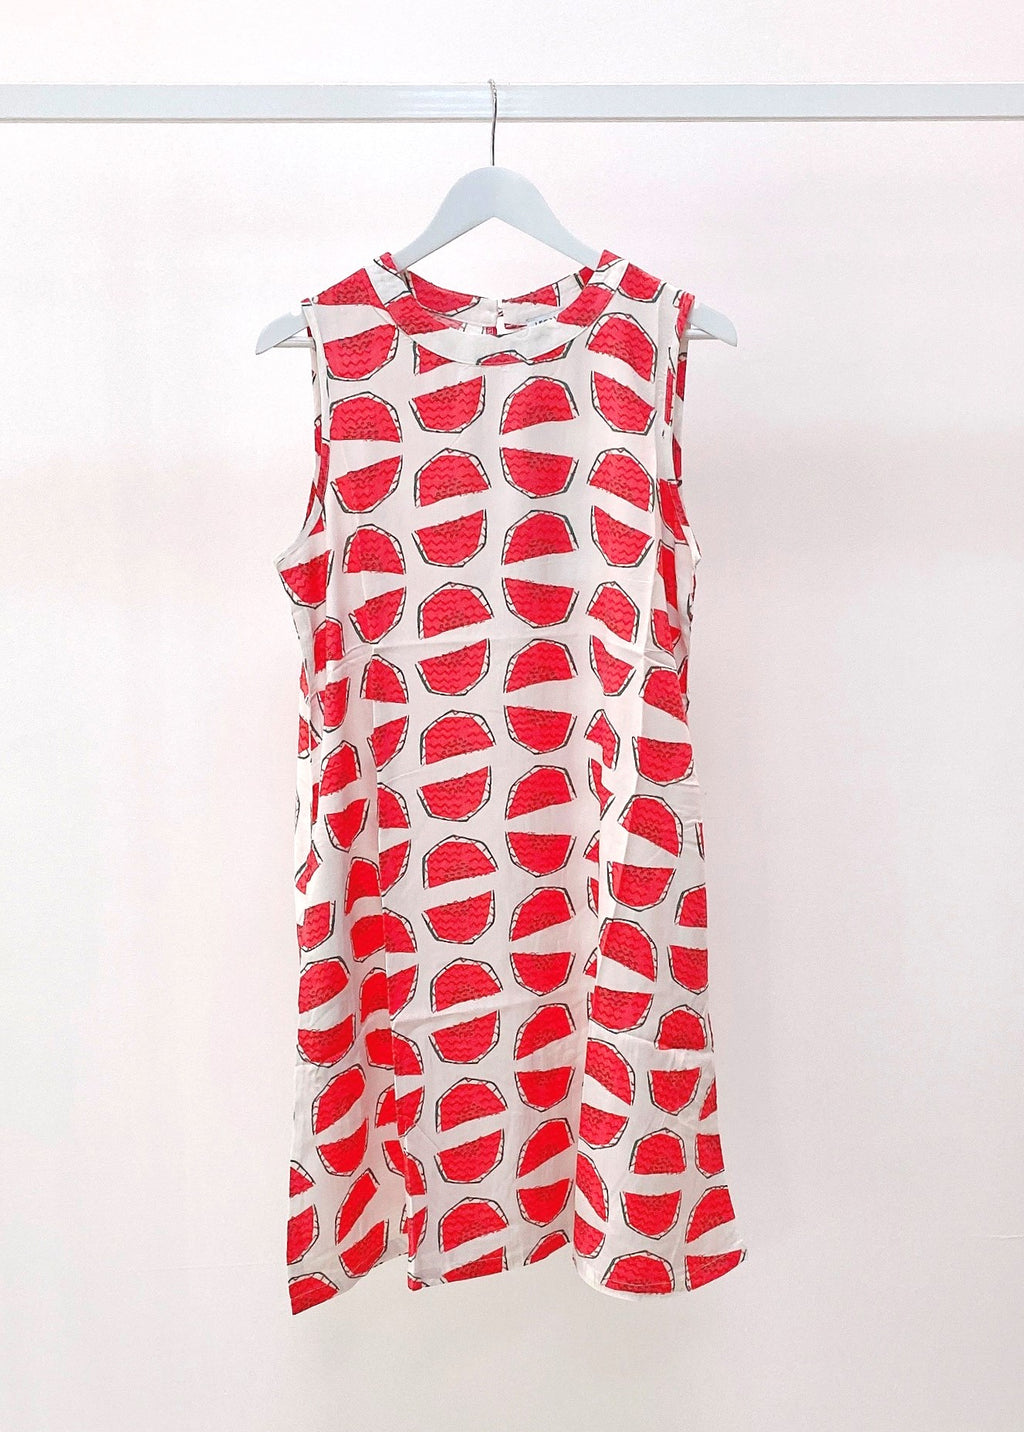 WATERMELON SLEEVE-LESS DRESS - WHITE - LAST STOCK